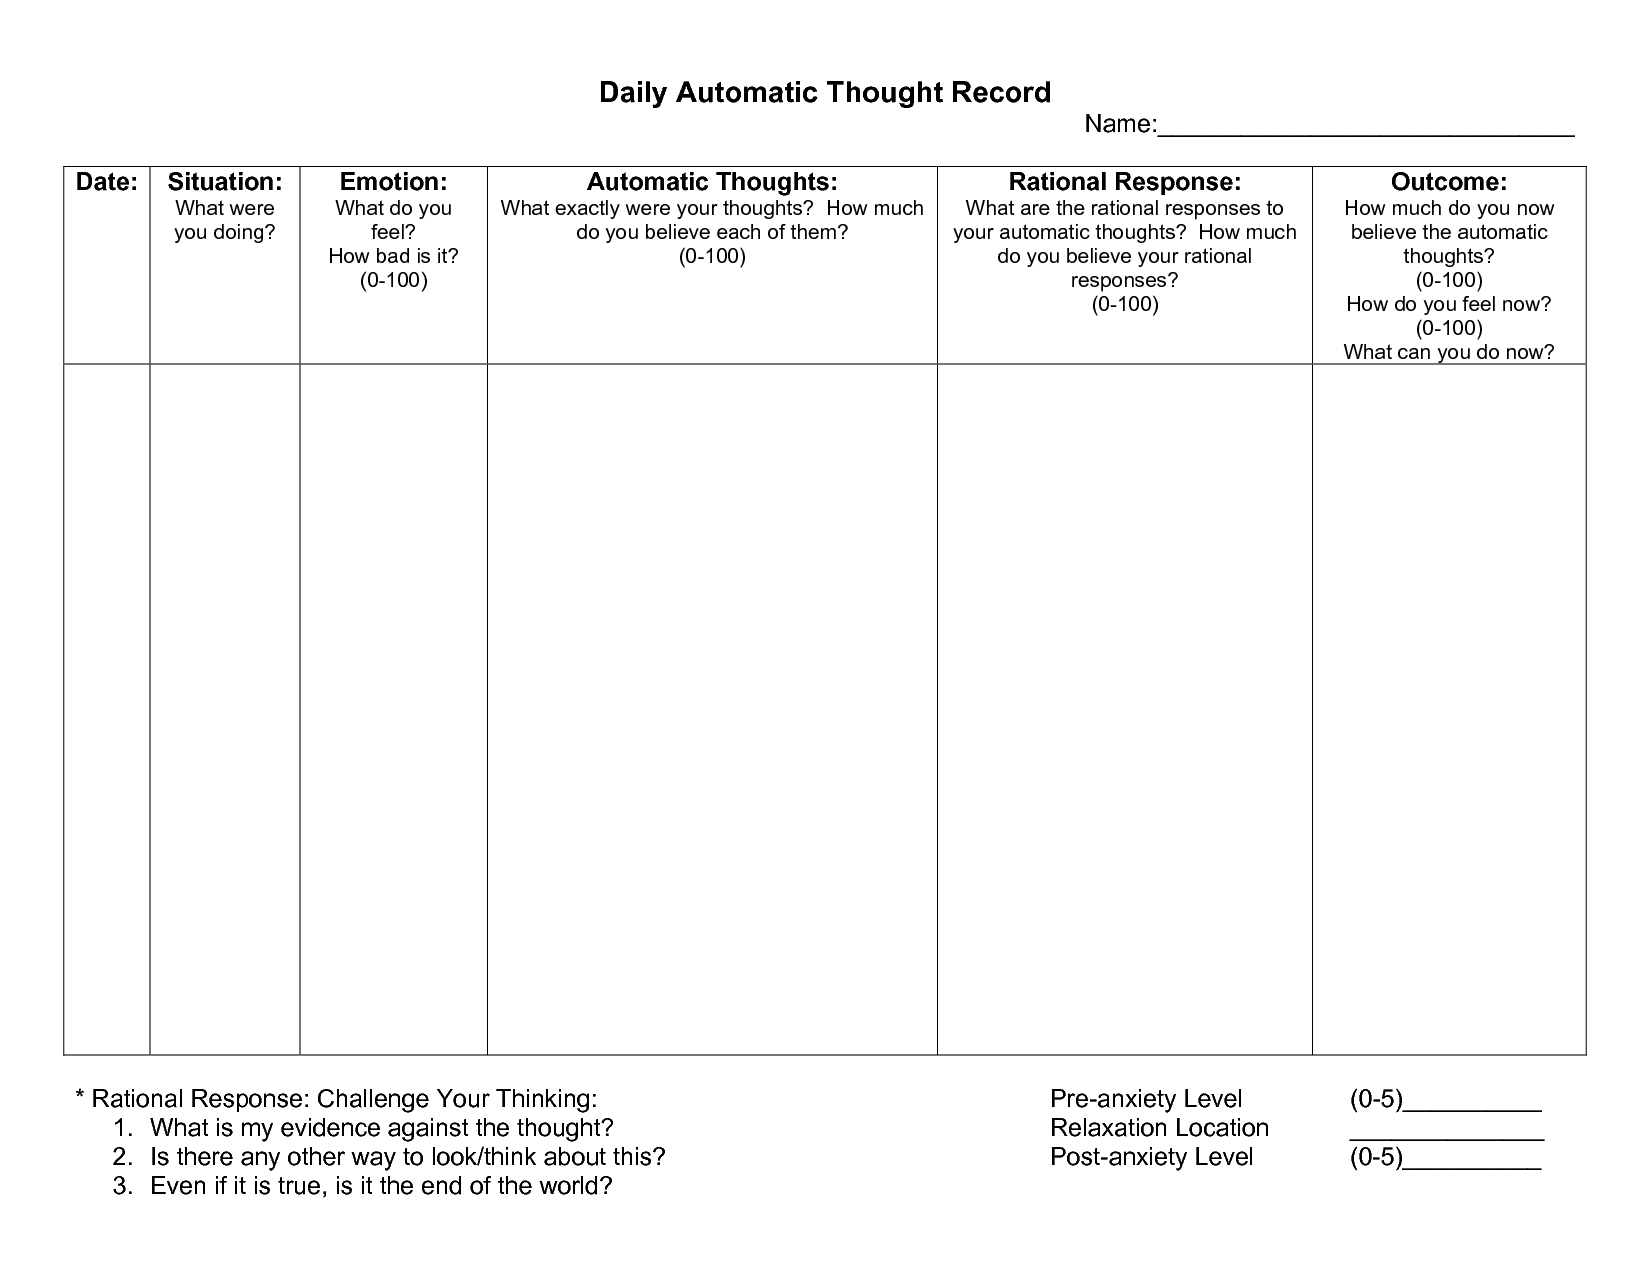 Worksheets Cognitive Behavioral Therapy Worksheets automatic thought record worksheet anxiety pinterest therapy cognitive behavioral worksheets and feeling behavior triangle worksheet